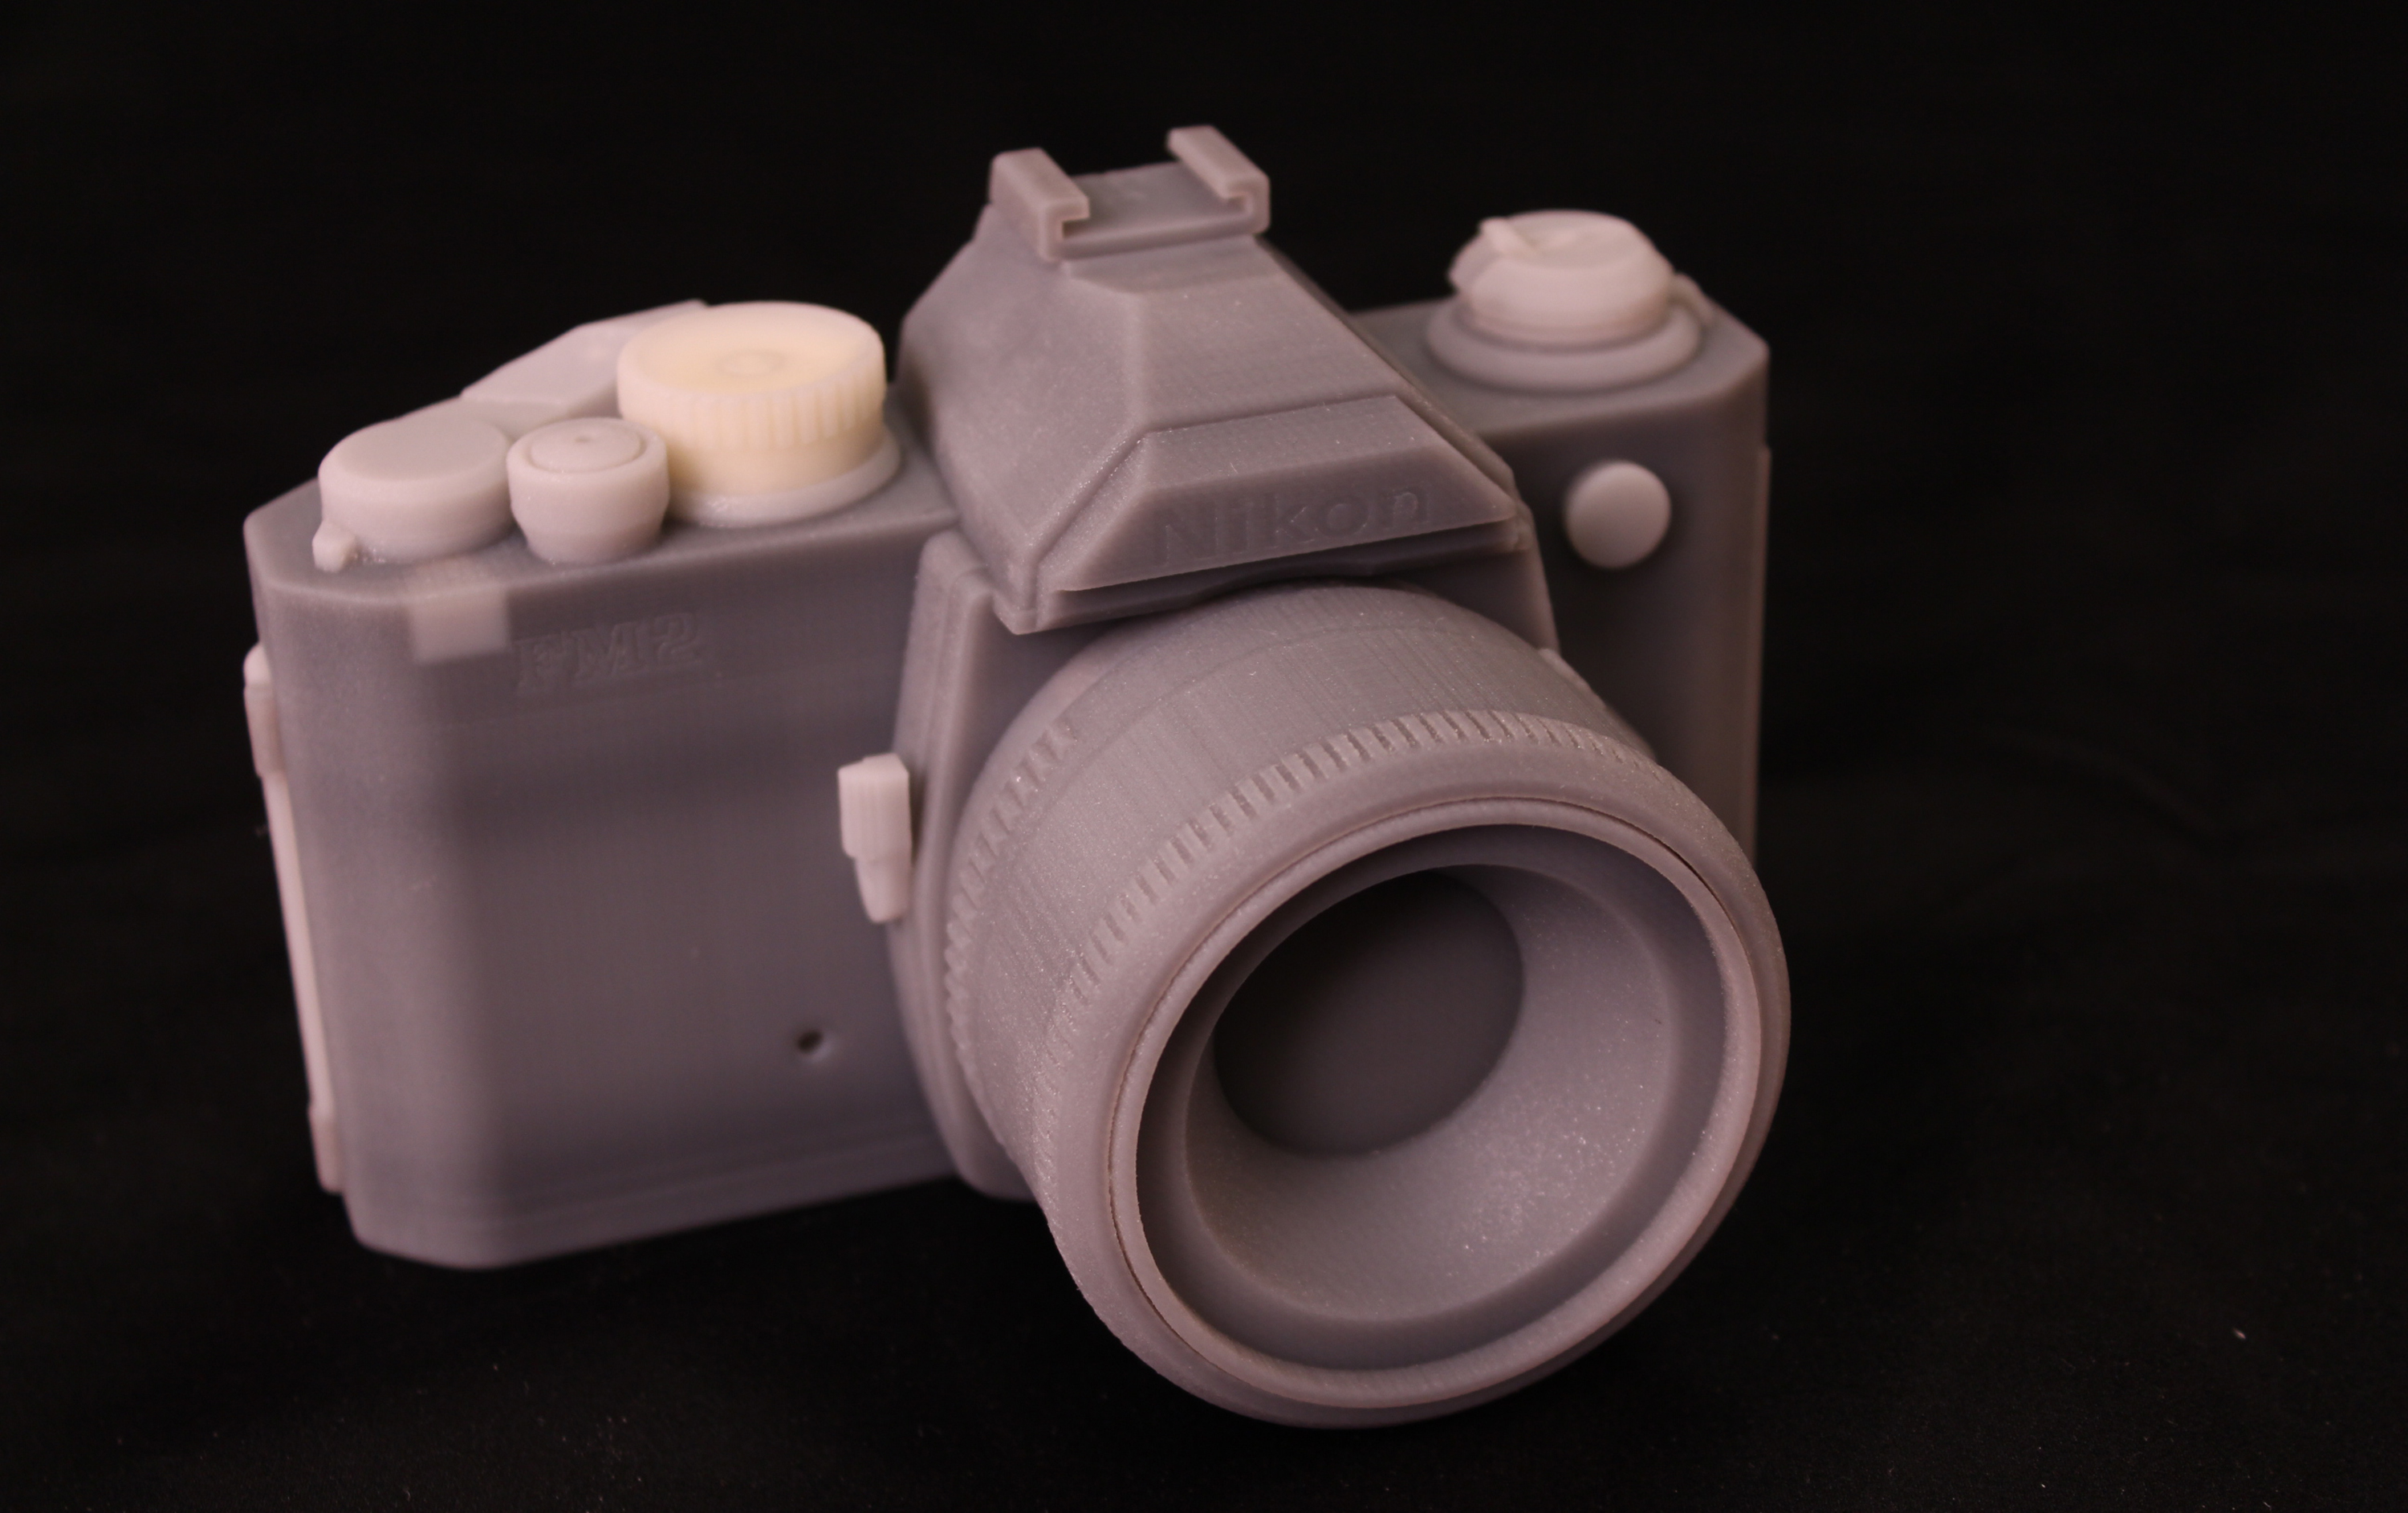 ProJet 5500x Mutlimaterial Camera